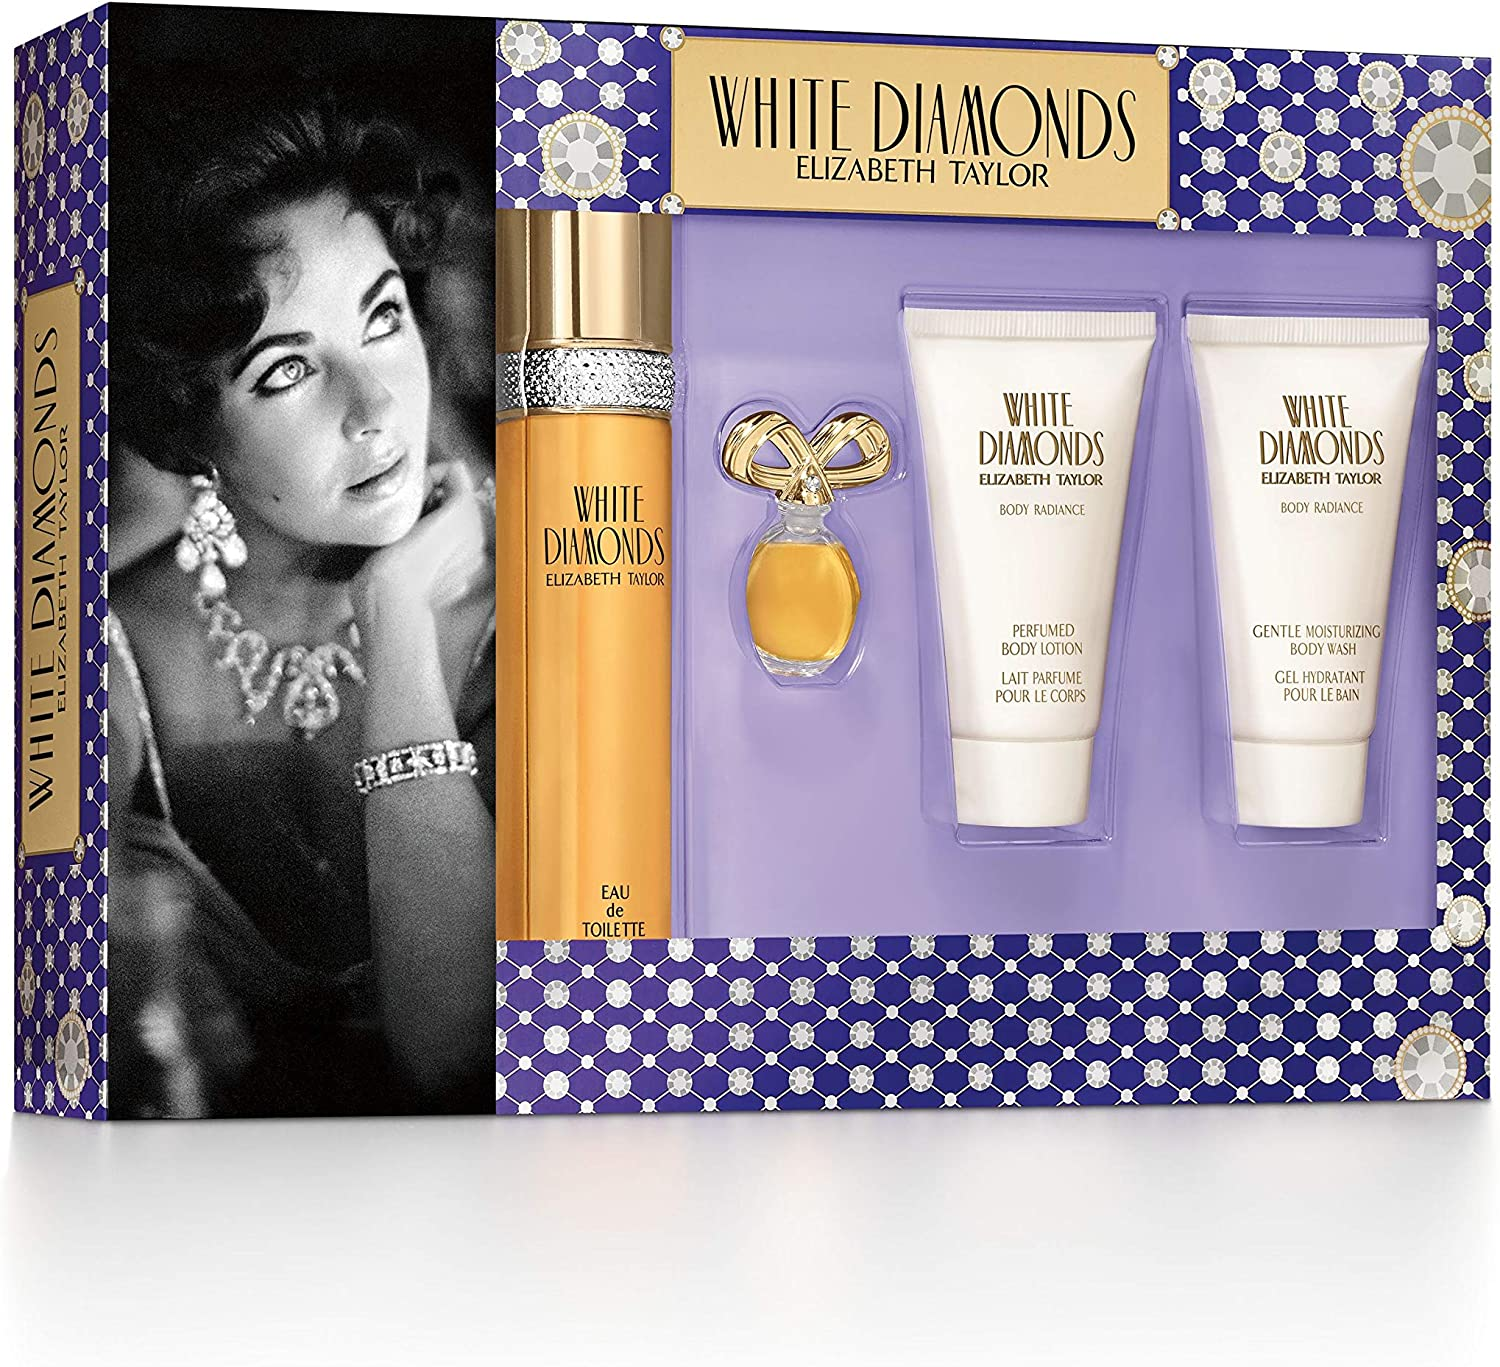 Elizabeth Taylor White Diamonds estuche Eau de Toilette 50 ml/Gel Hidratante Baño 50 ml/leche (aroma de cuerpo 50 ml/Miniature 3,5 ml: Amazon.es: Belleza